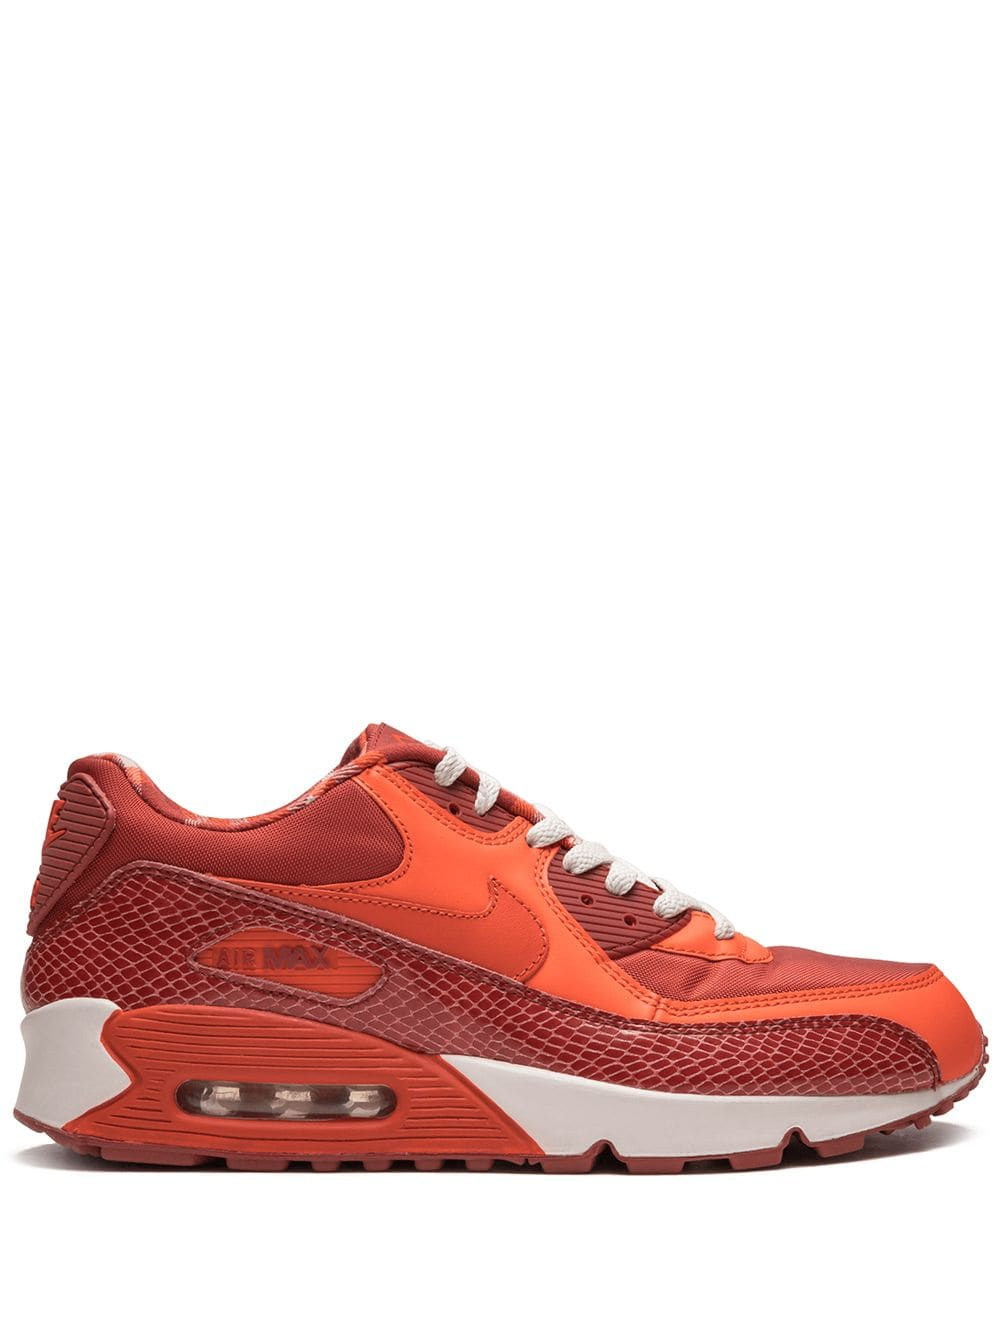 Nike Air Max 90 QK sneakers Red in 2019 | Products | Nike